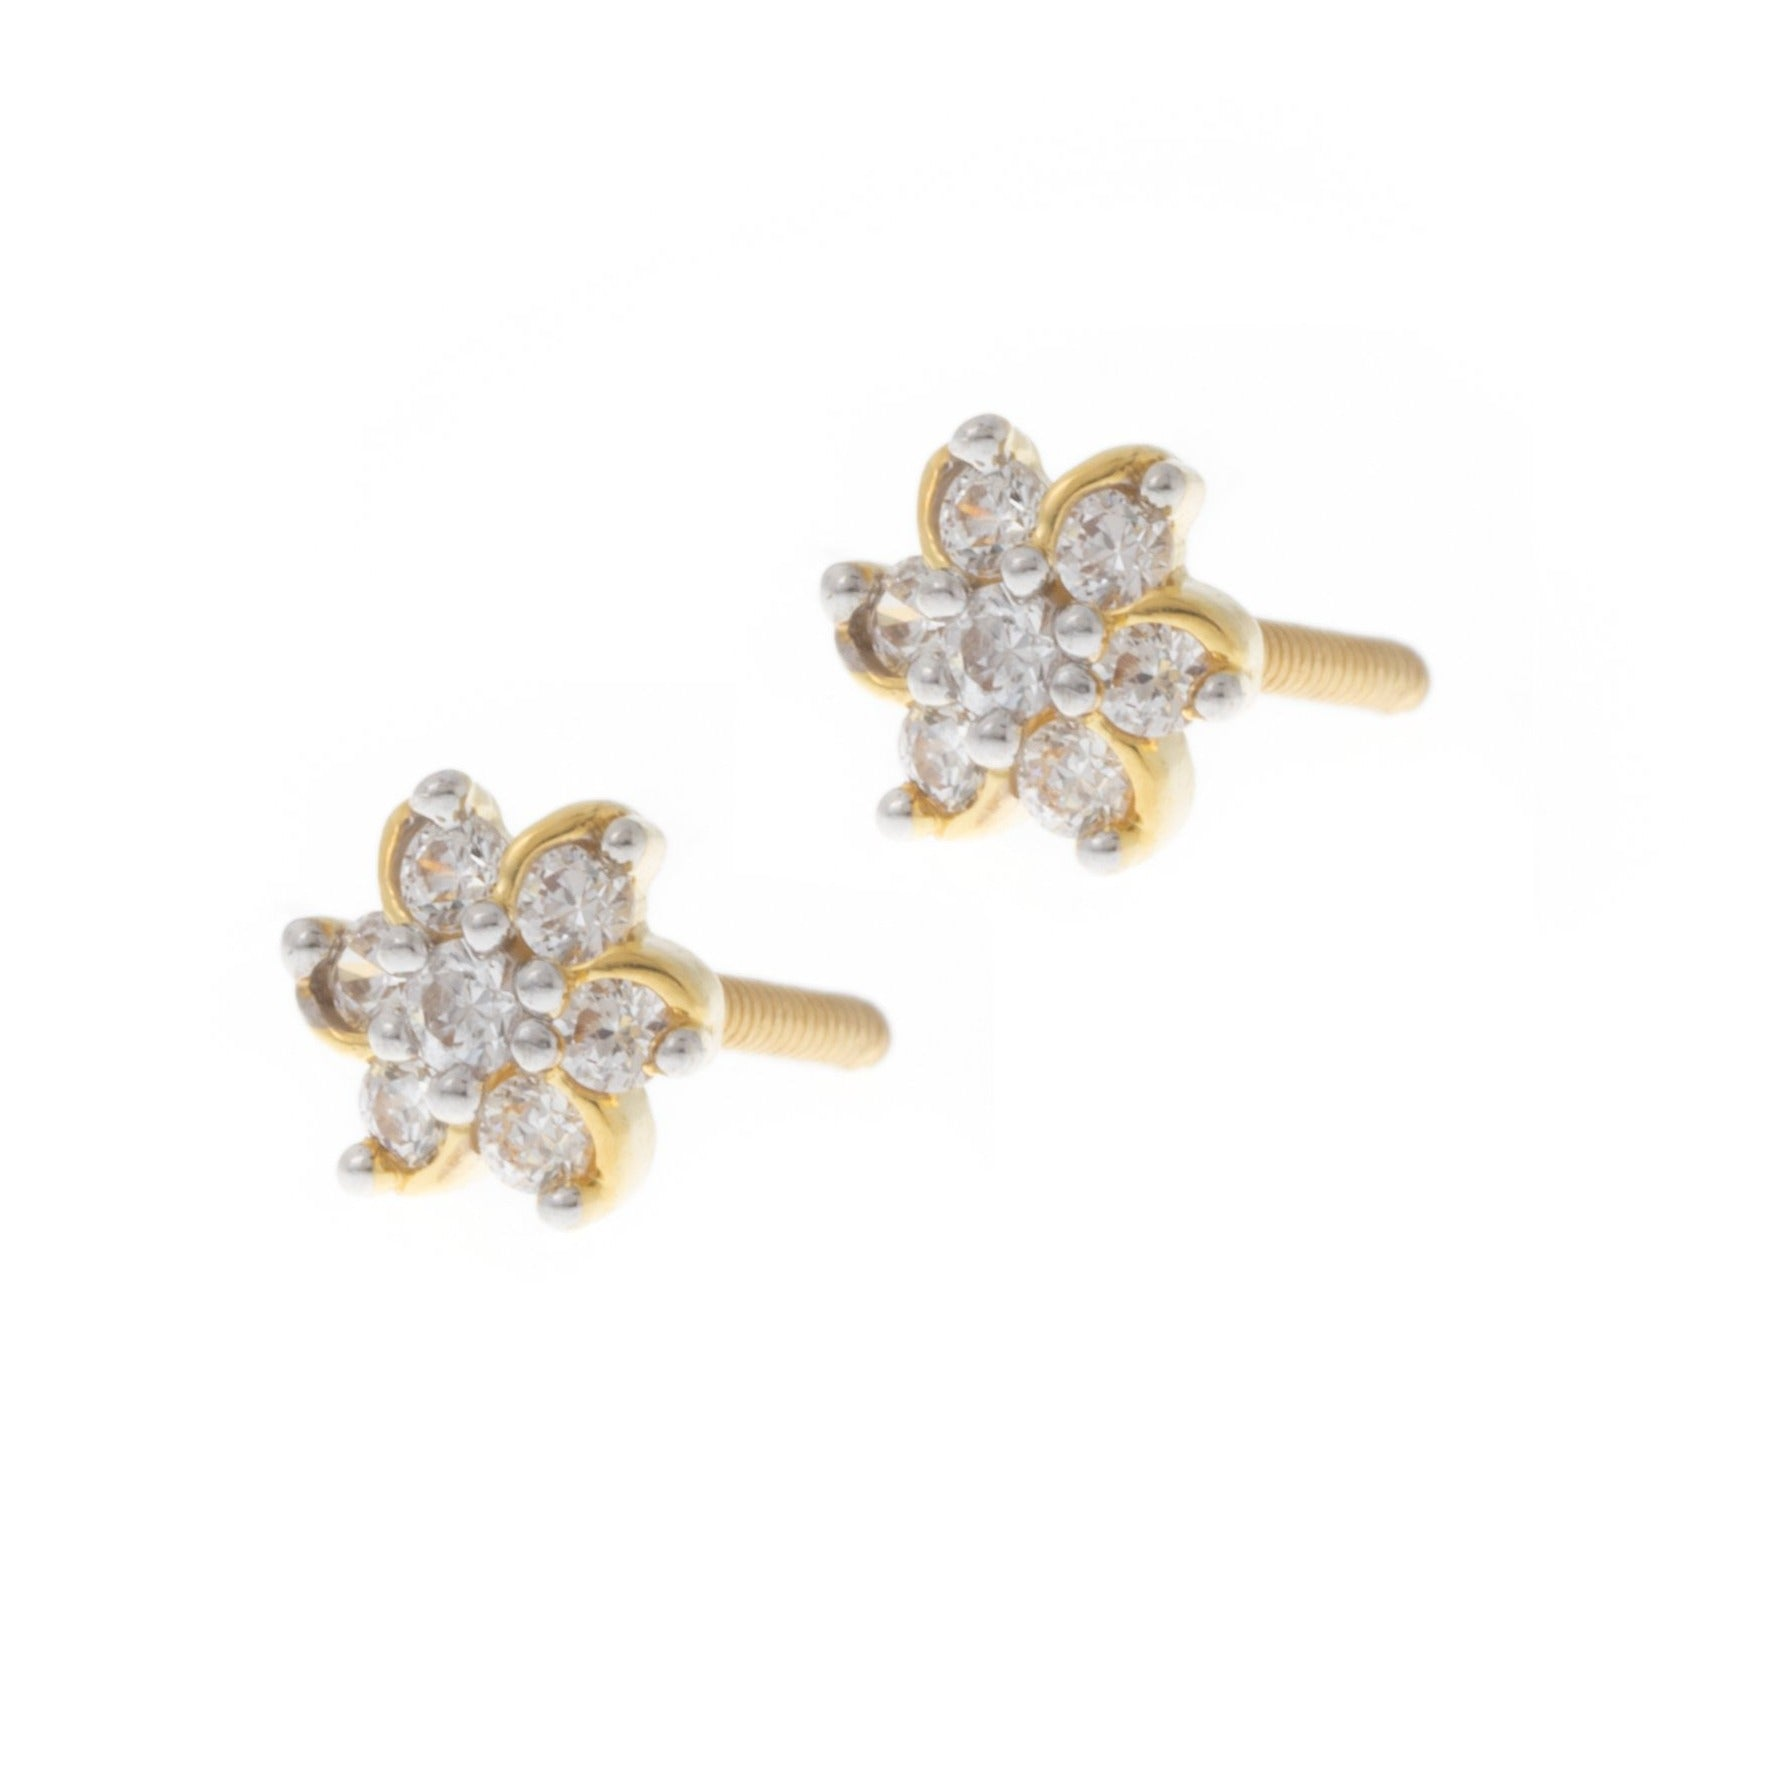 22ct Gold Stud Earrings with a flower design set with Swarovski Zirconias (1.88g) ET7011